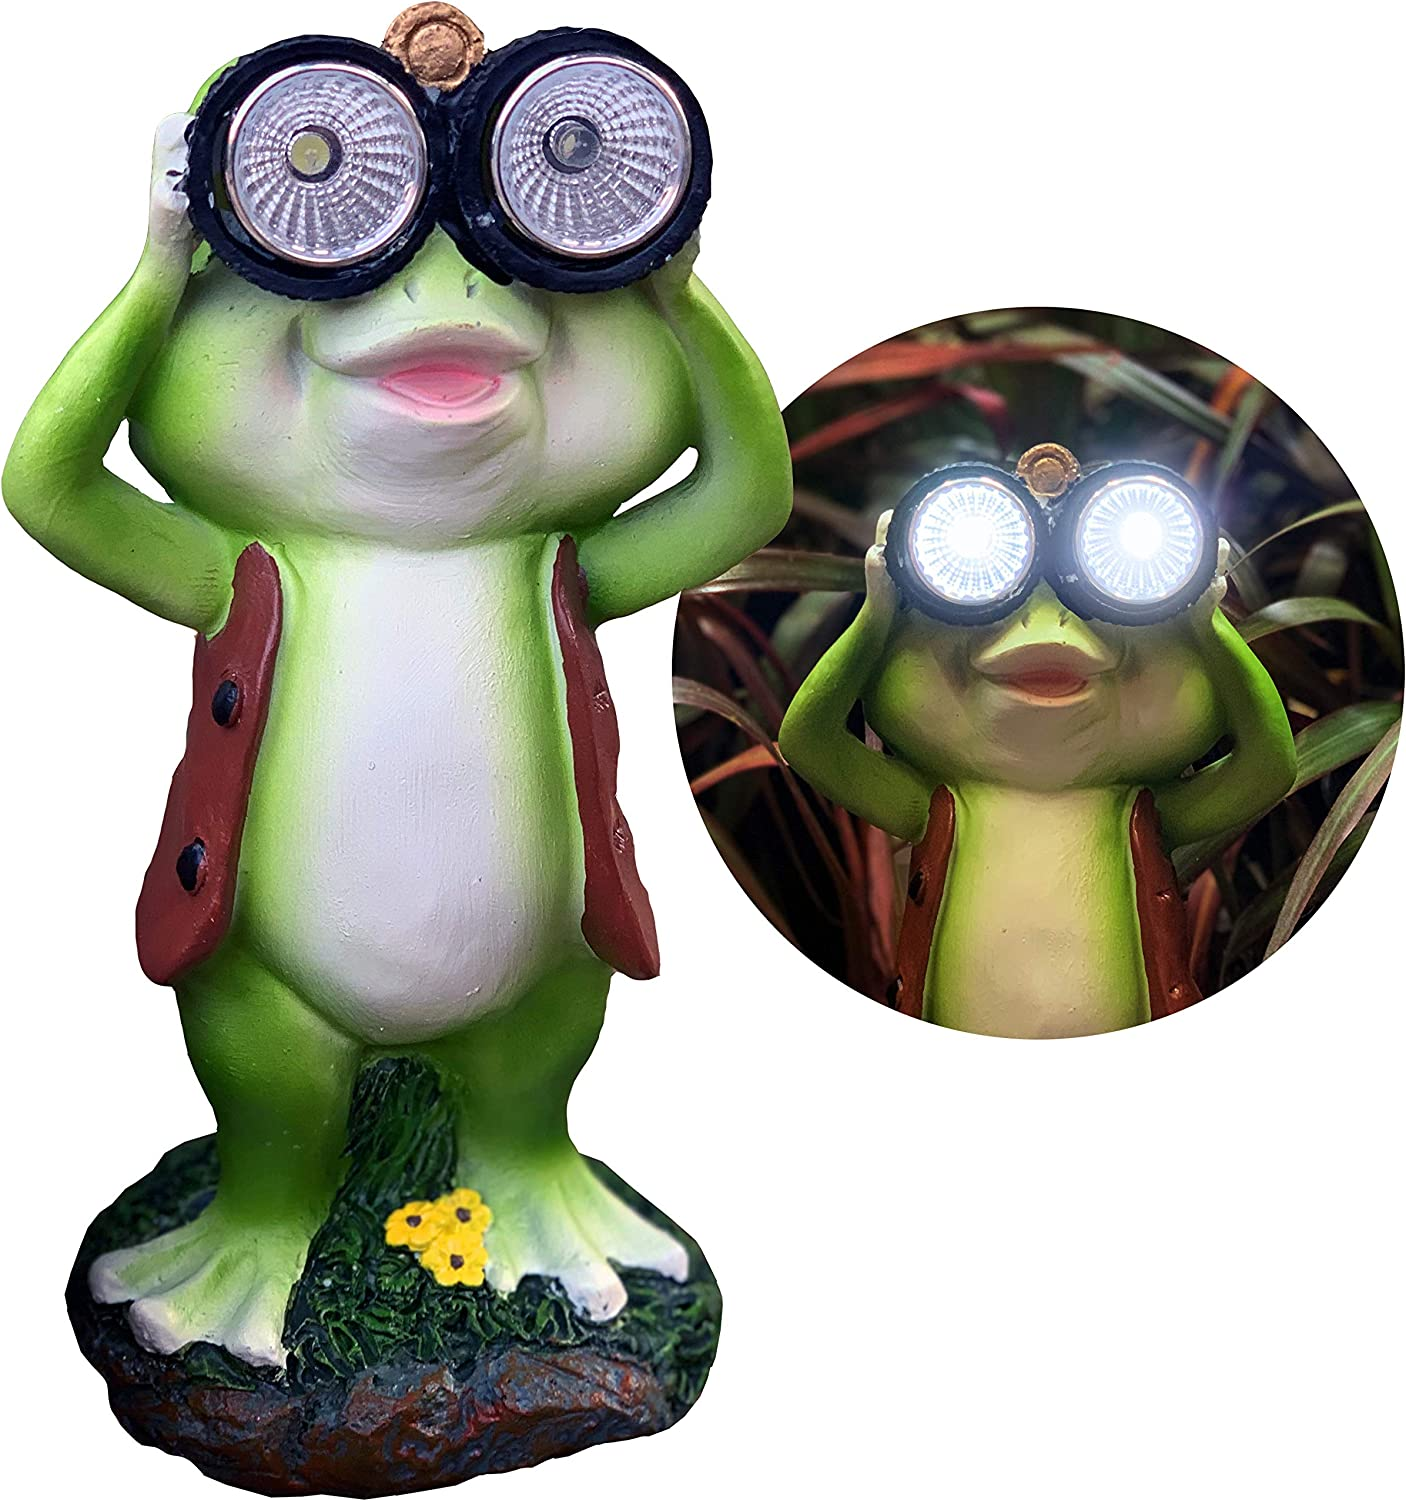 New Solar Frog Lawn Ornament - Limited Edition 'Freddy The Explorer' - 8 inches Tall - Solar Garden Statue